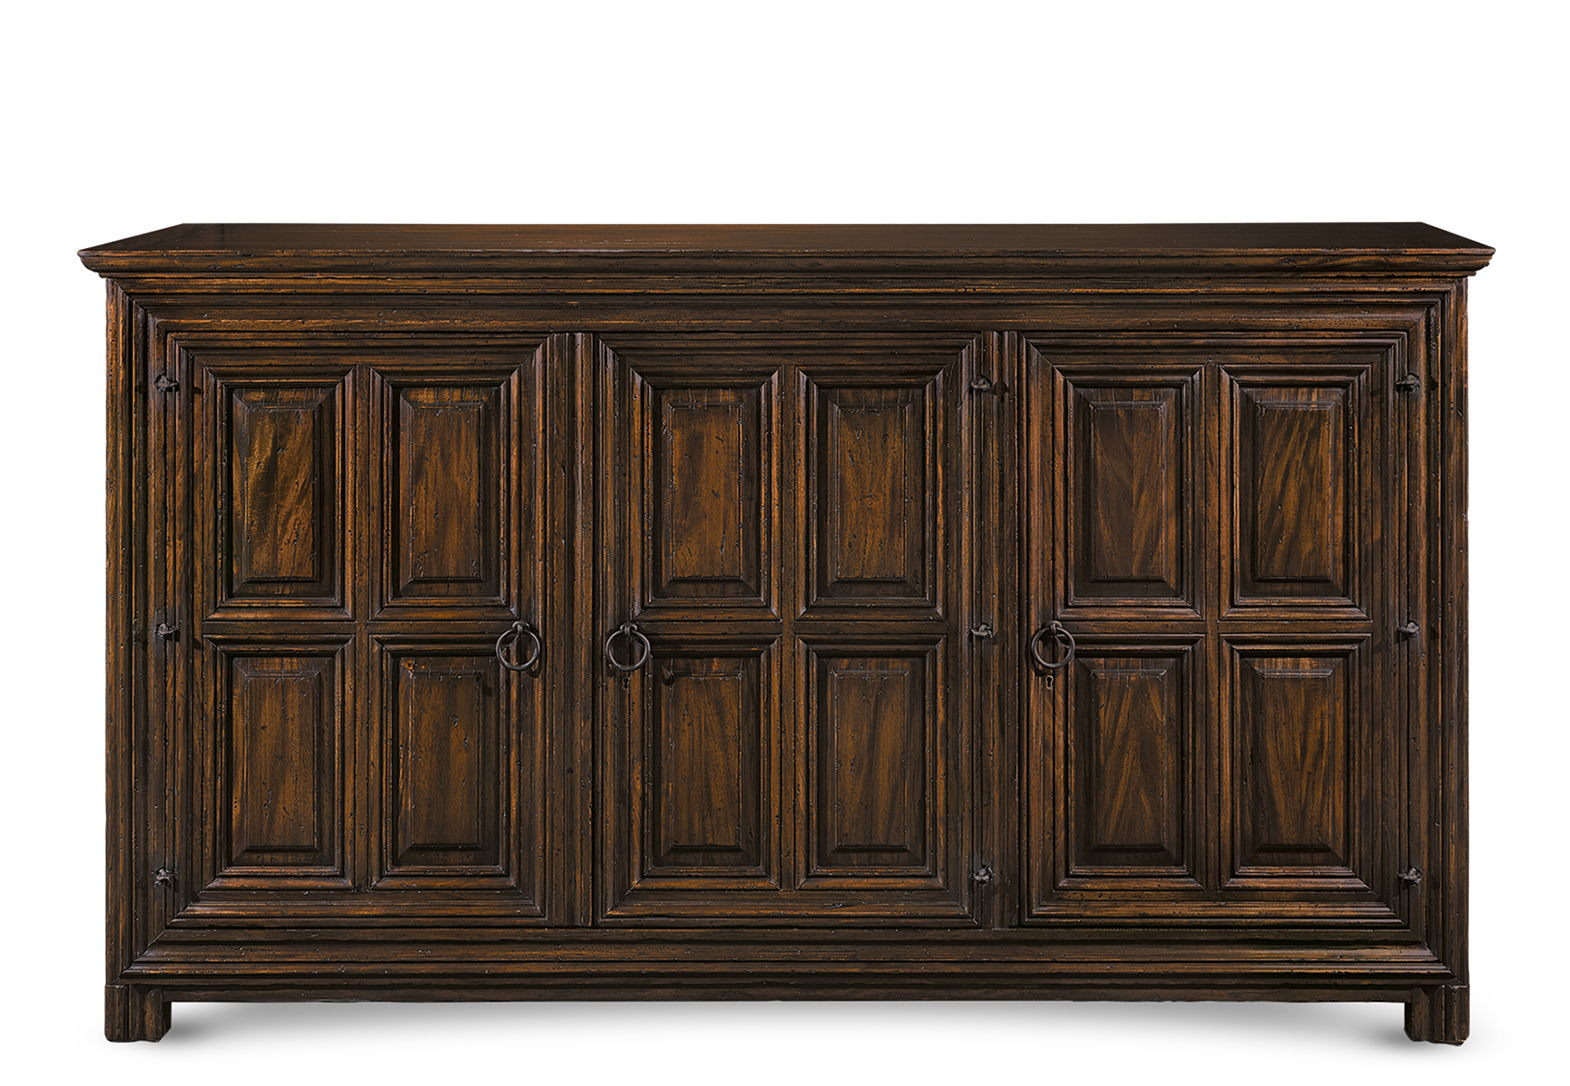 MORELIA SACRISTY CHEST WITH 3 DOORS